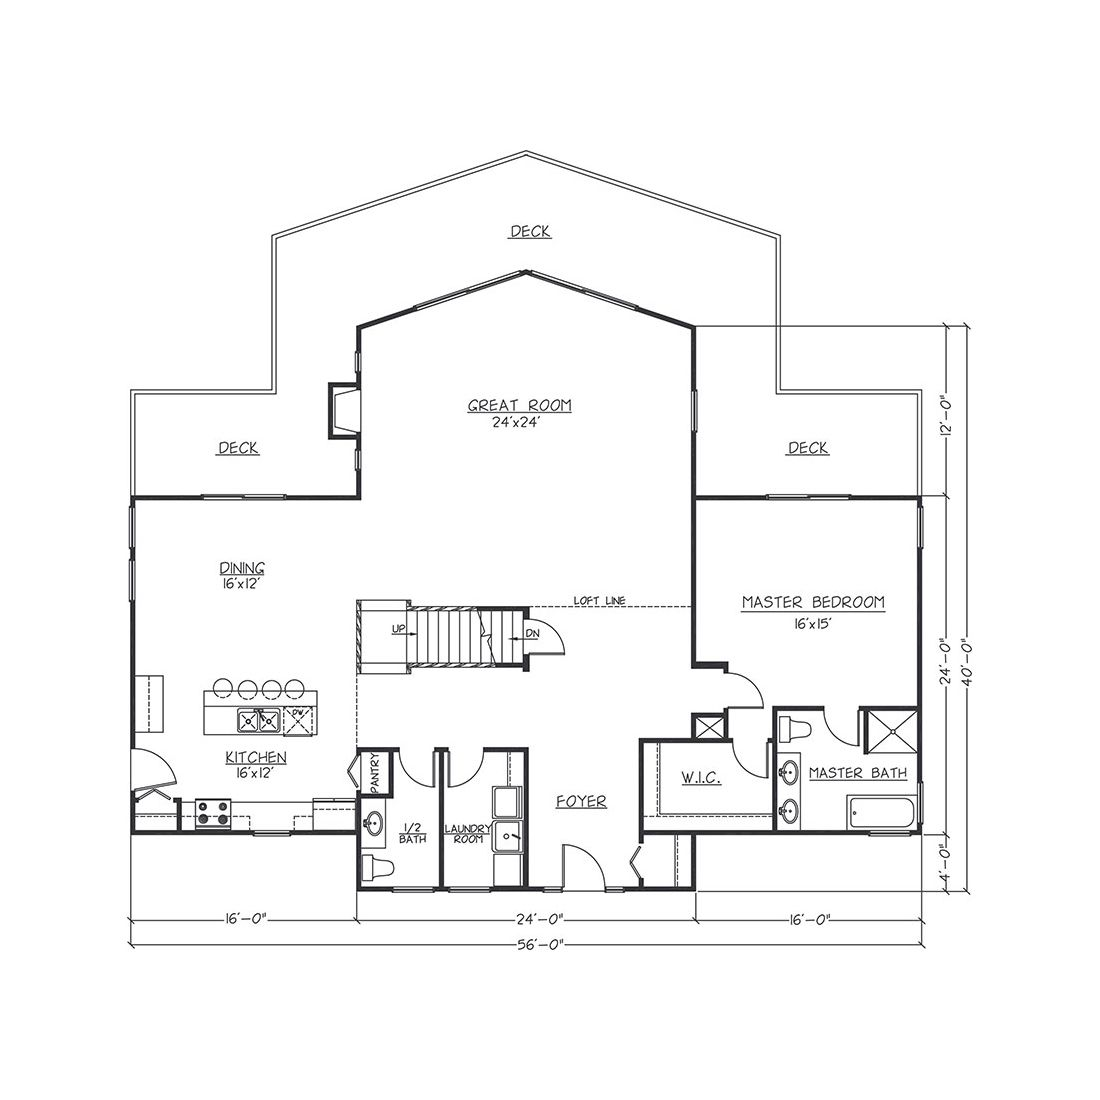 #5 MAIN FLOOR 24x36 with 2 WingsTotal Sq. Ft.= 2688